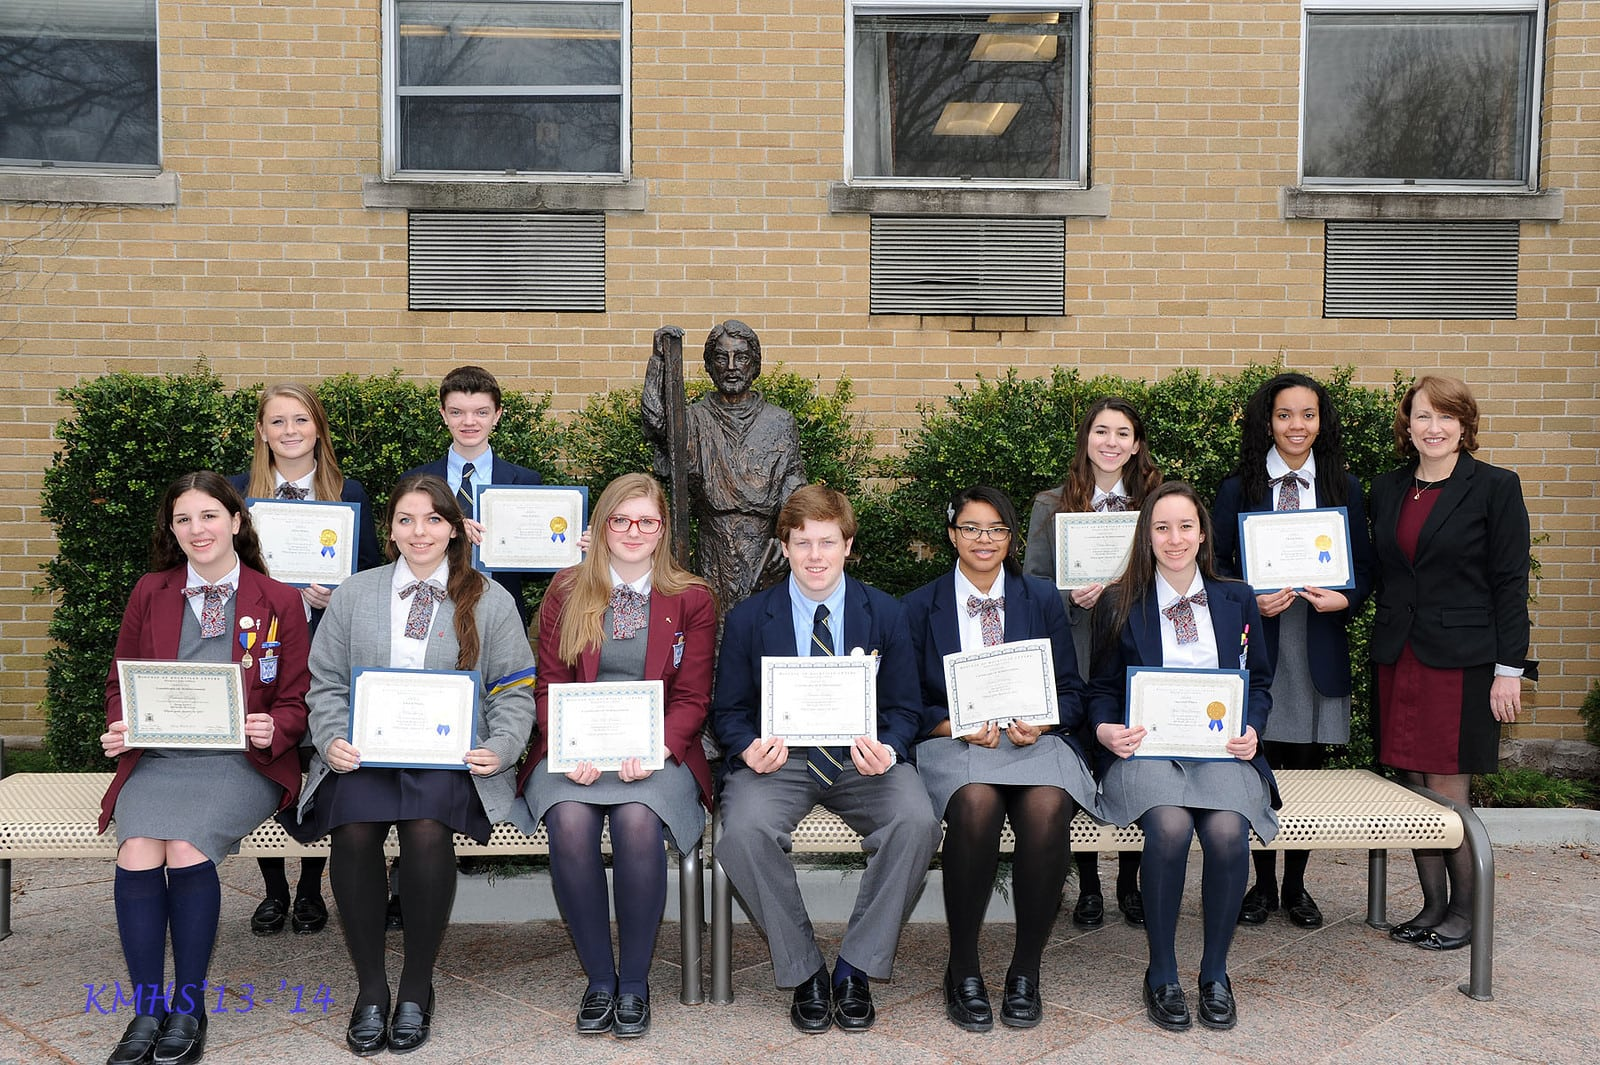 kmhs students are awarded at diocesan respect life youth awards life issues by submitting a poem essay photograph bookmark design photomontage board video clip or song that ties in the contest theme